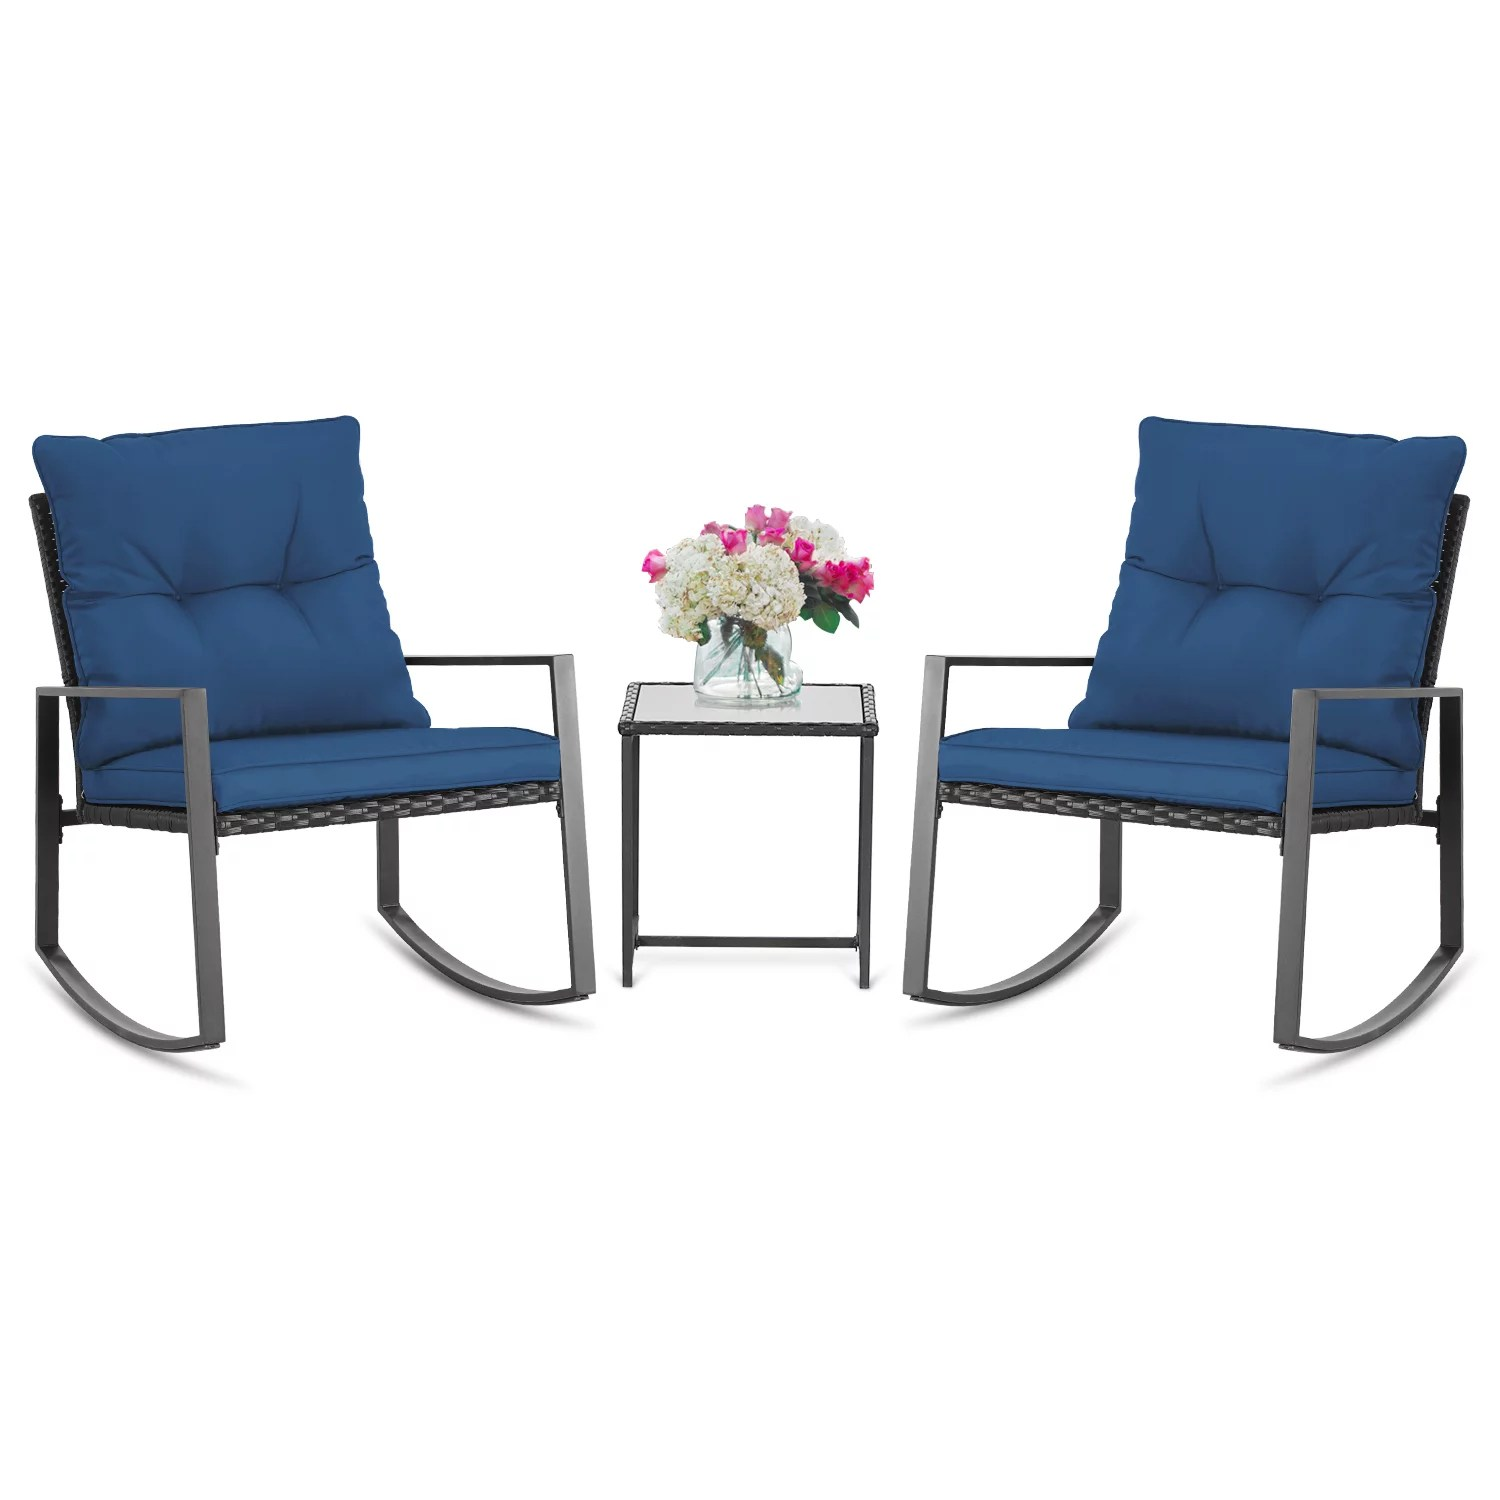 suncrown outdoor patio rocking chair sets 3 piece bistro set black wicker furniture two chairs with glass coffee table dark blue cushion